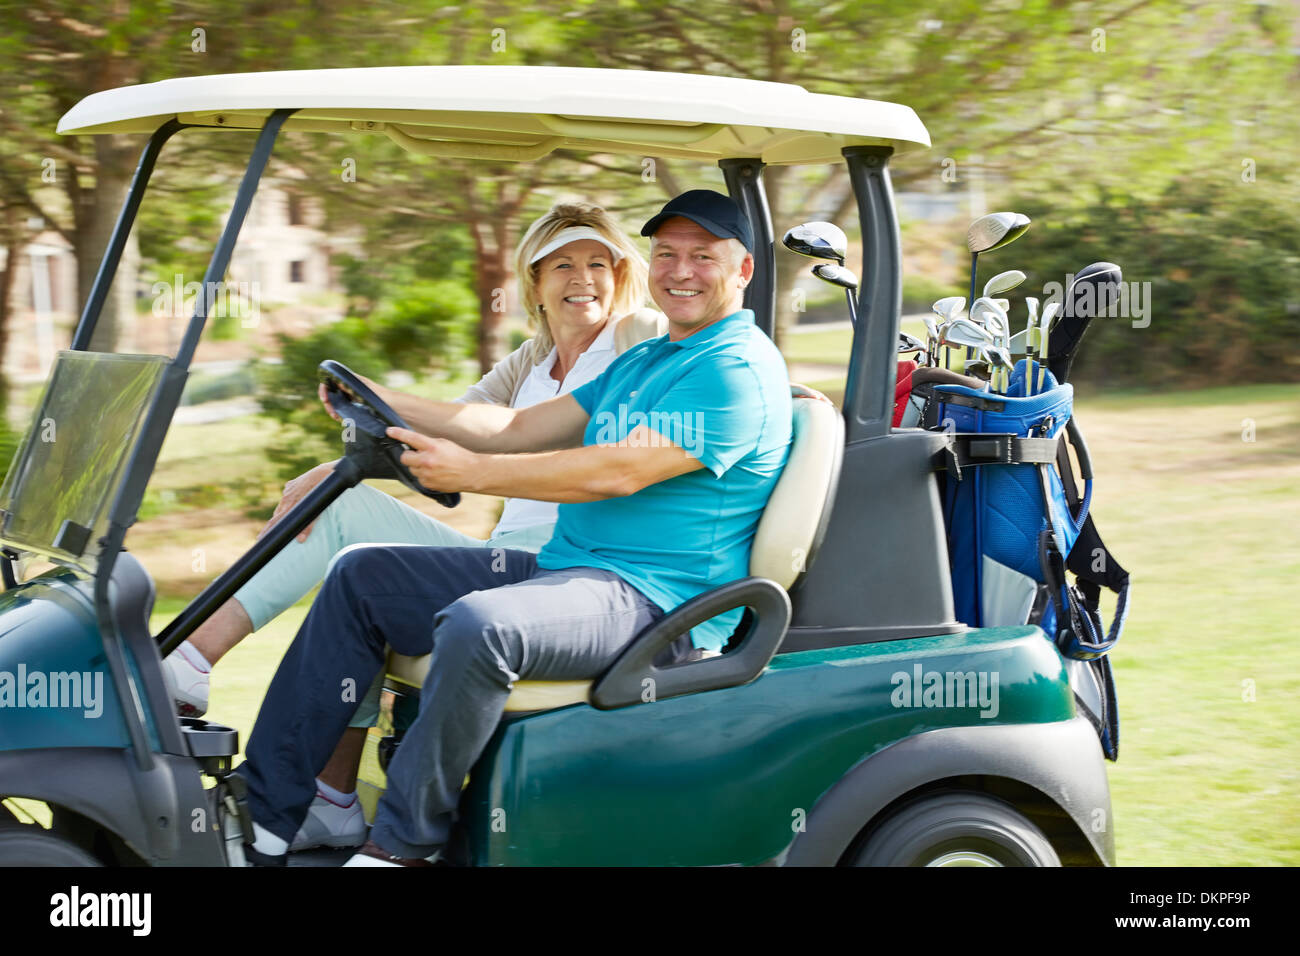 Senior couple driving golf cart on course - Stock Image